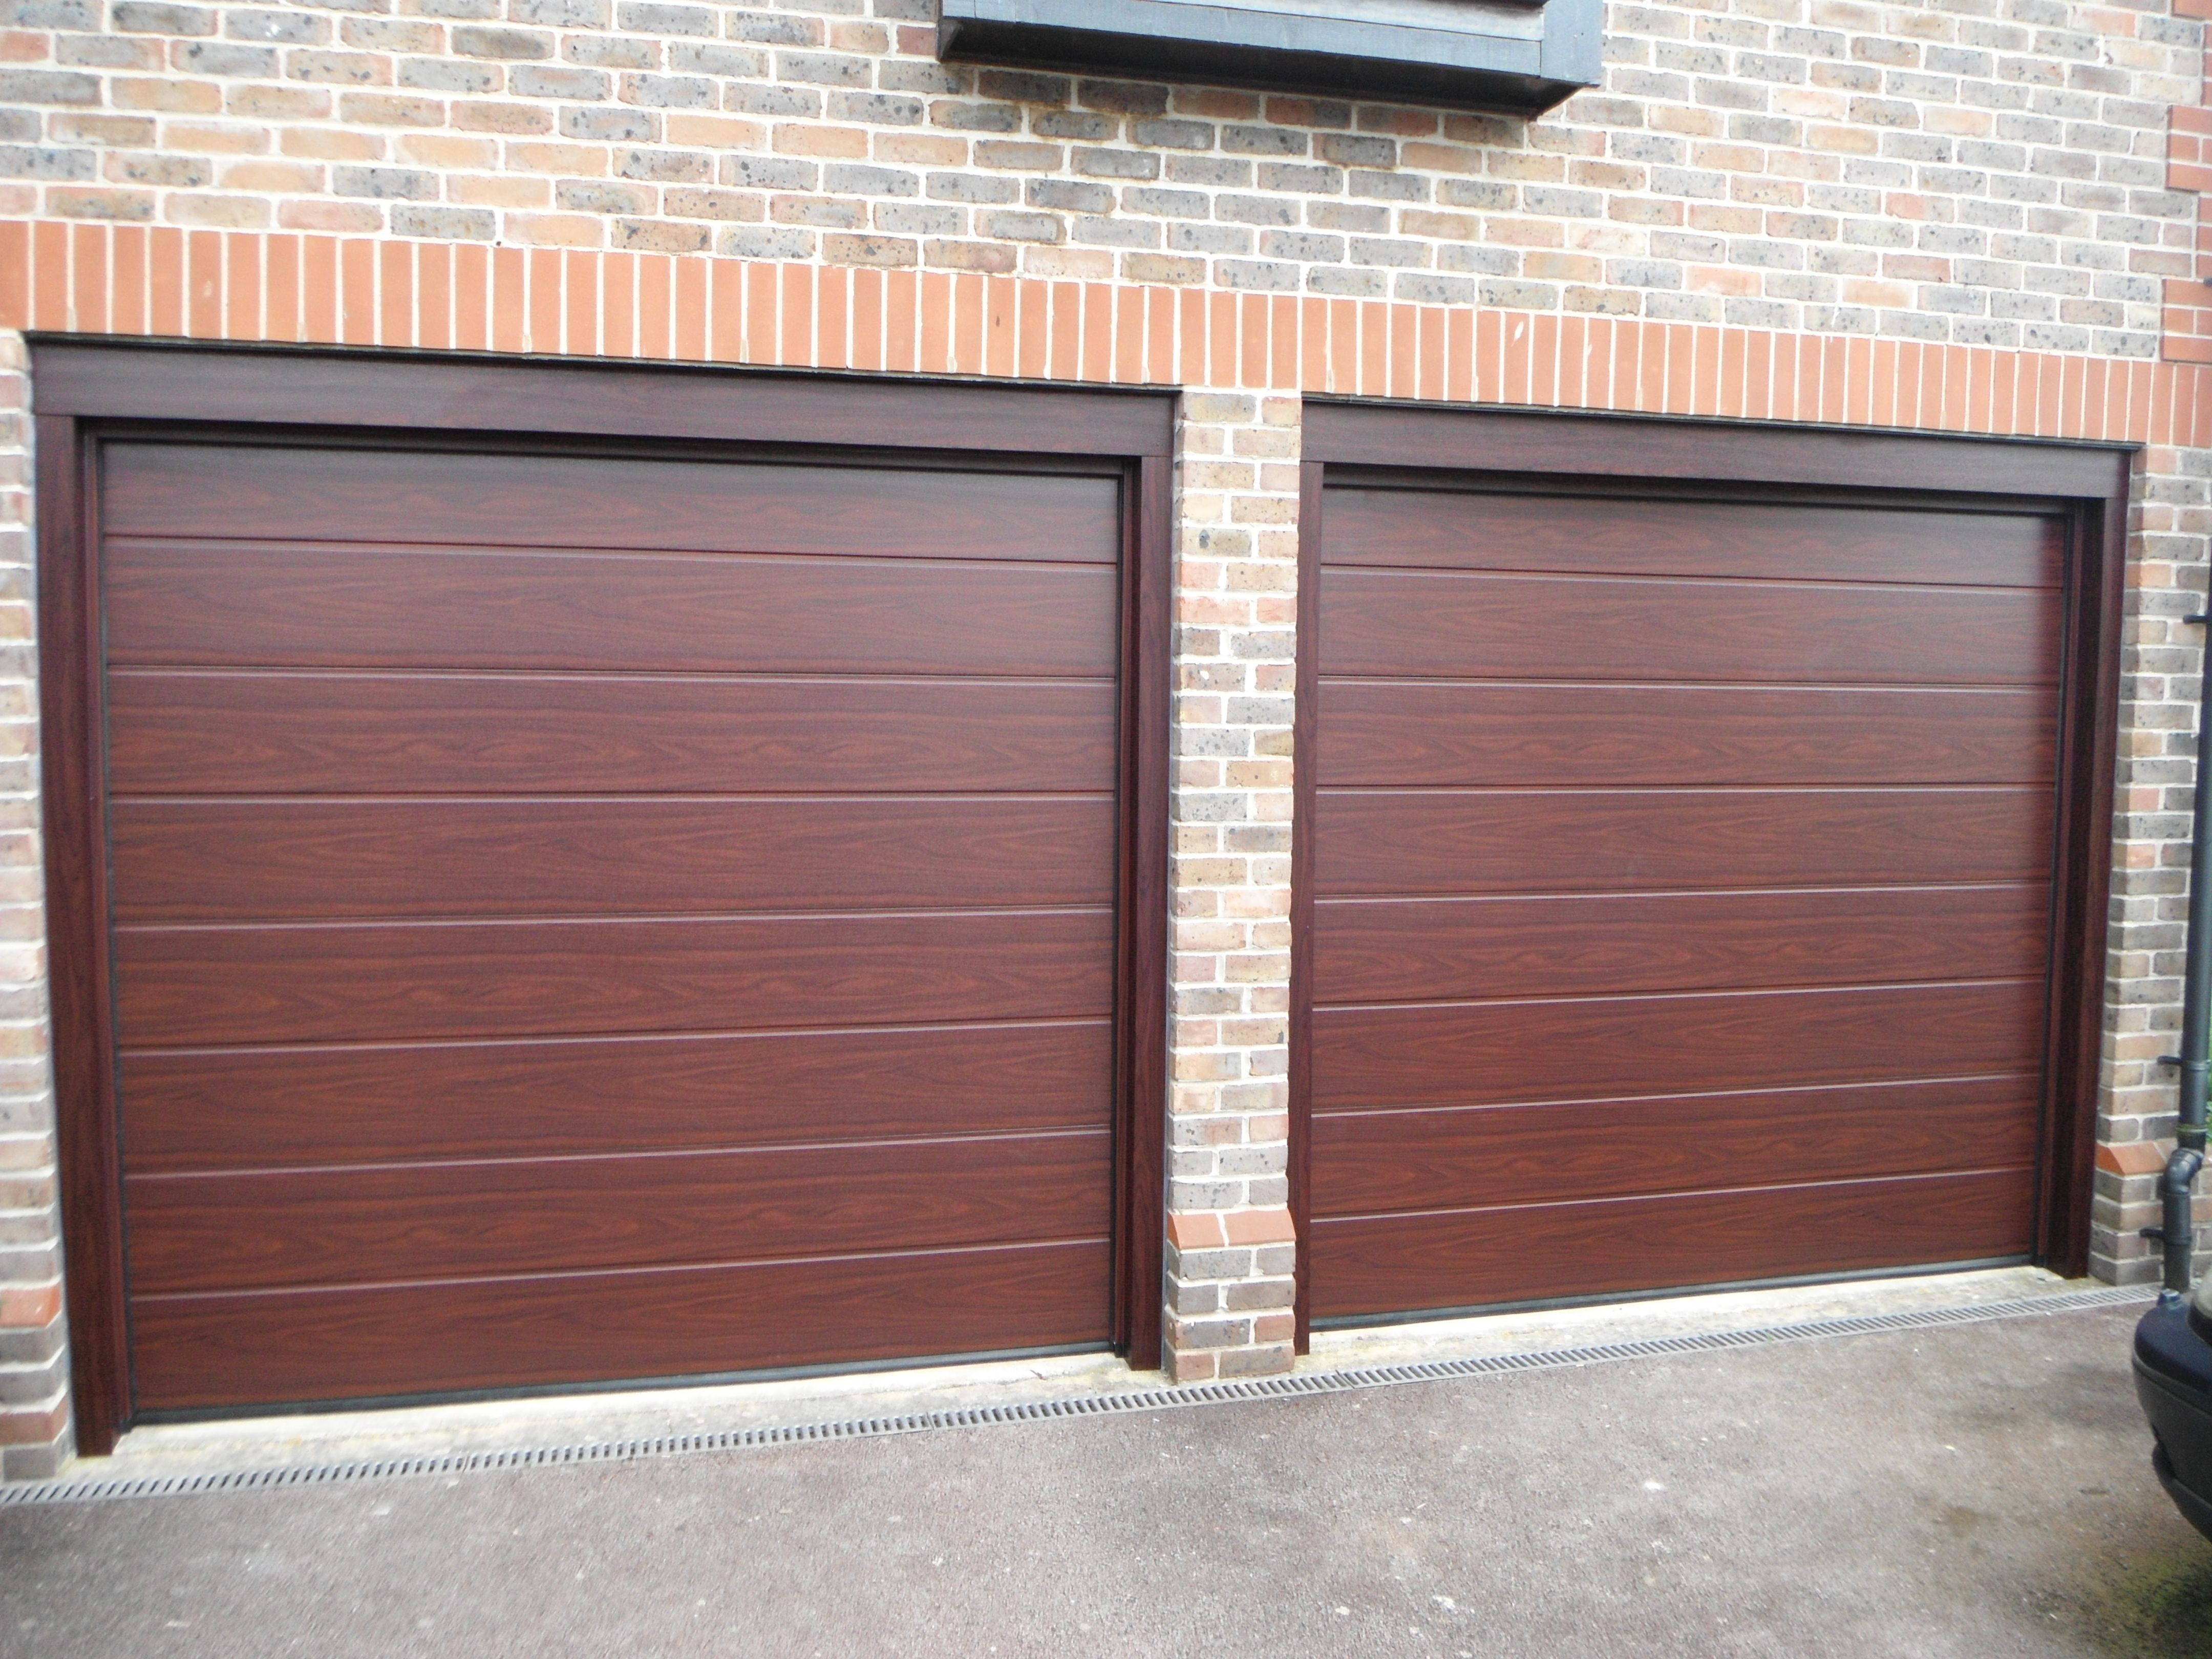 Hormann MRibbed Decograin Rosewood Sectional Garage Doors